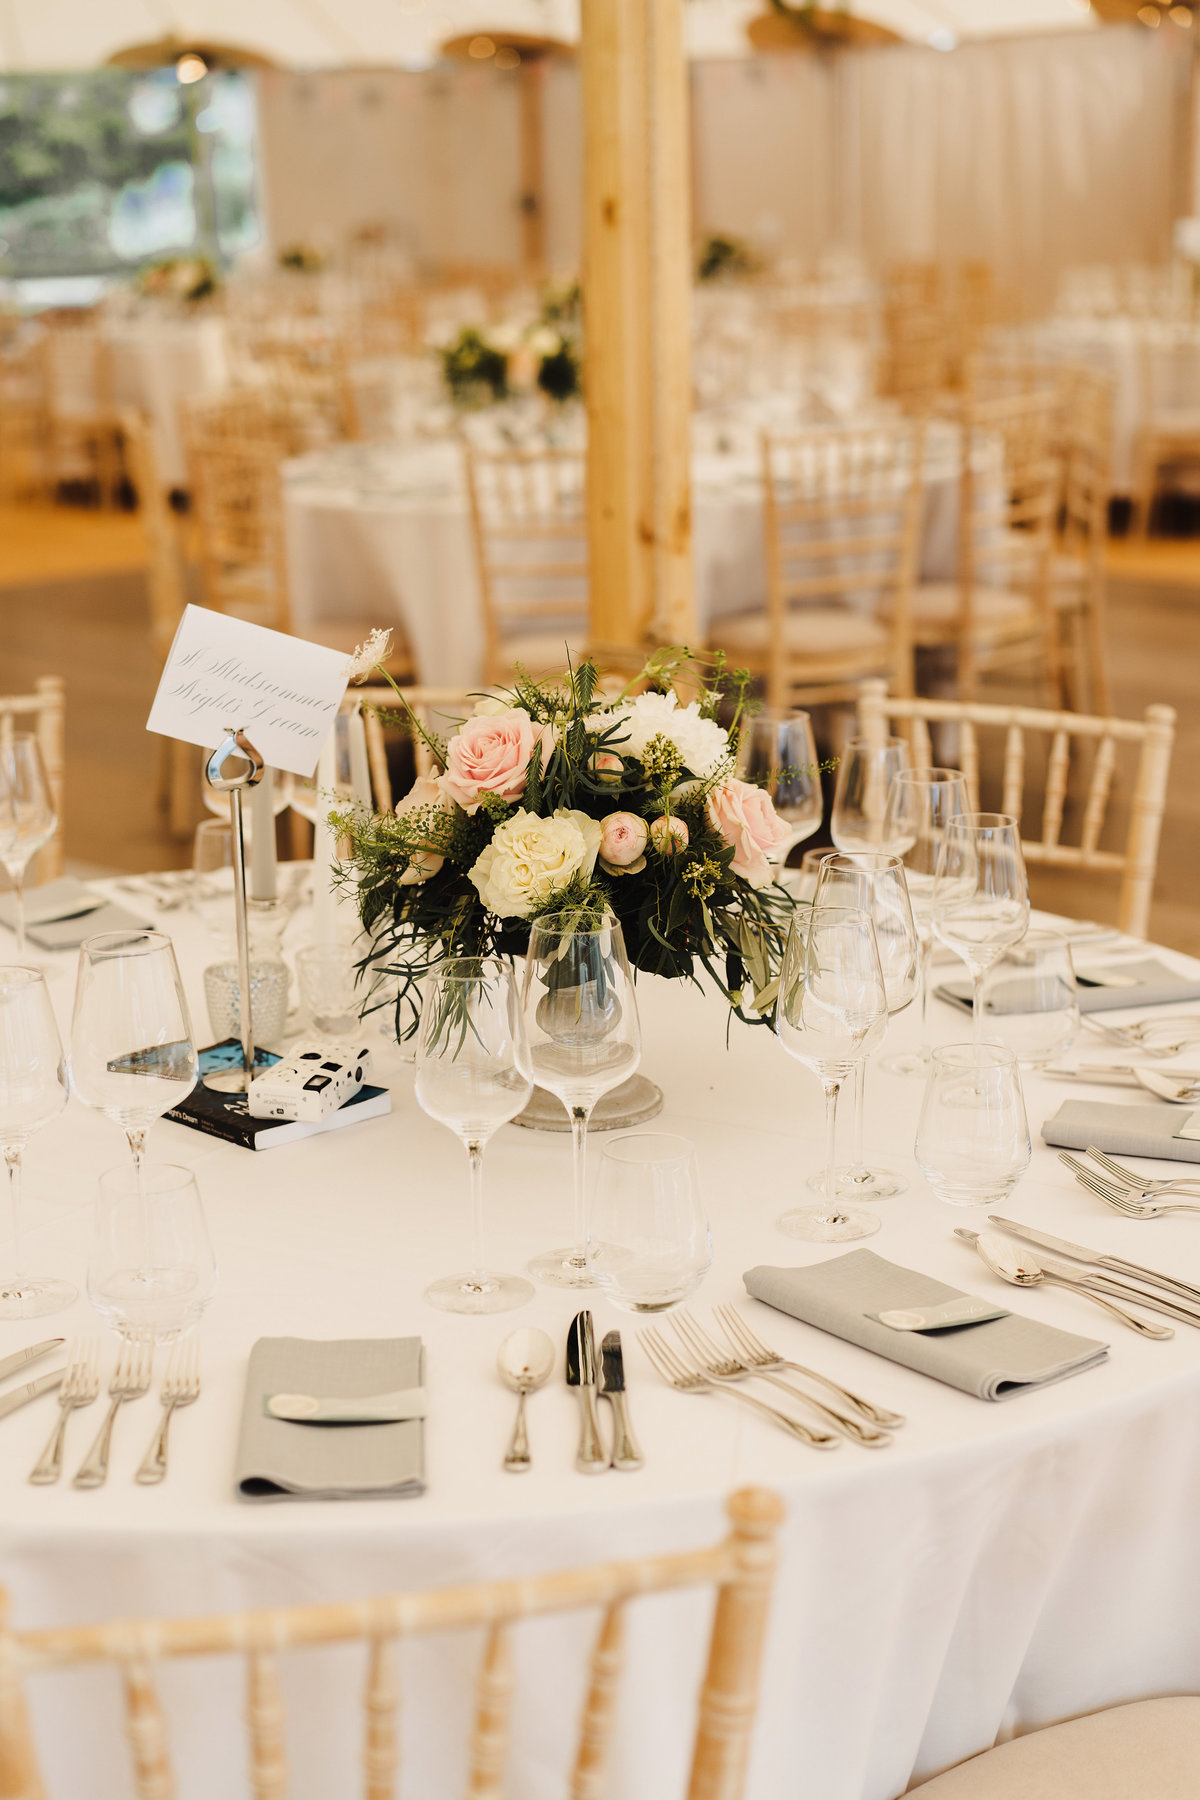 Event Table Setting Scotland | Jenni Liandu Calligraphy